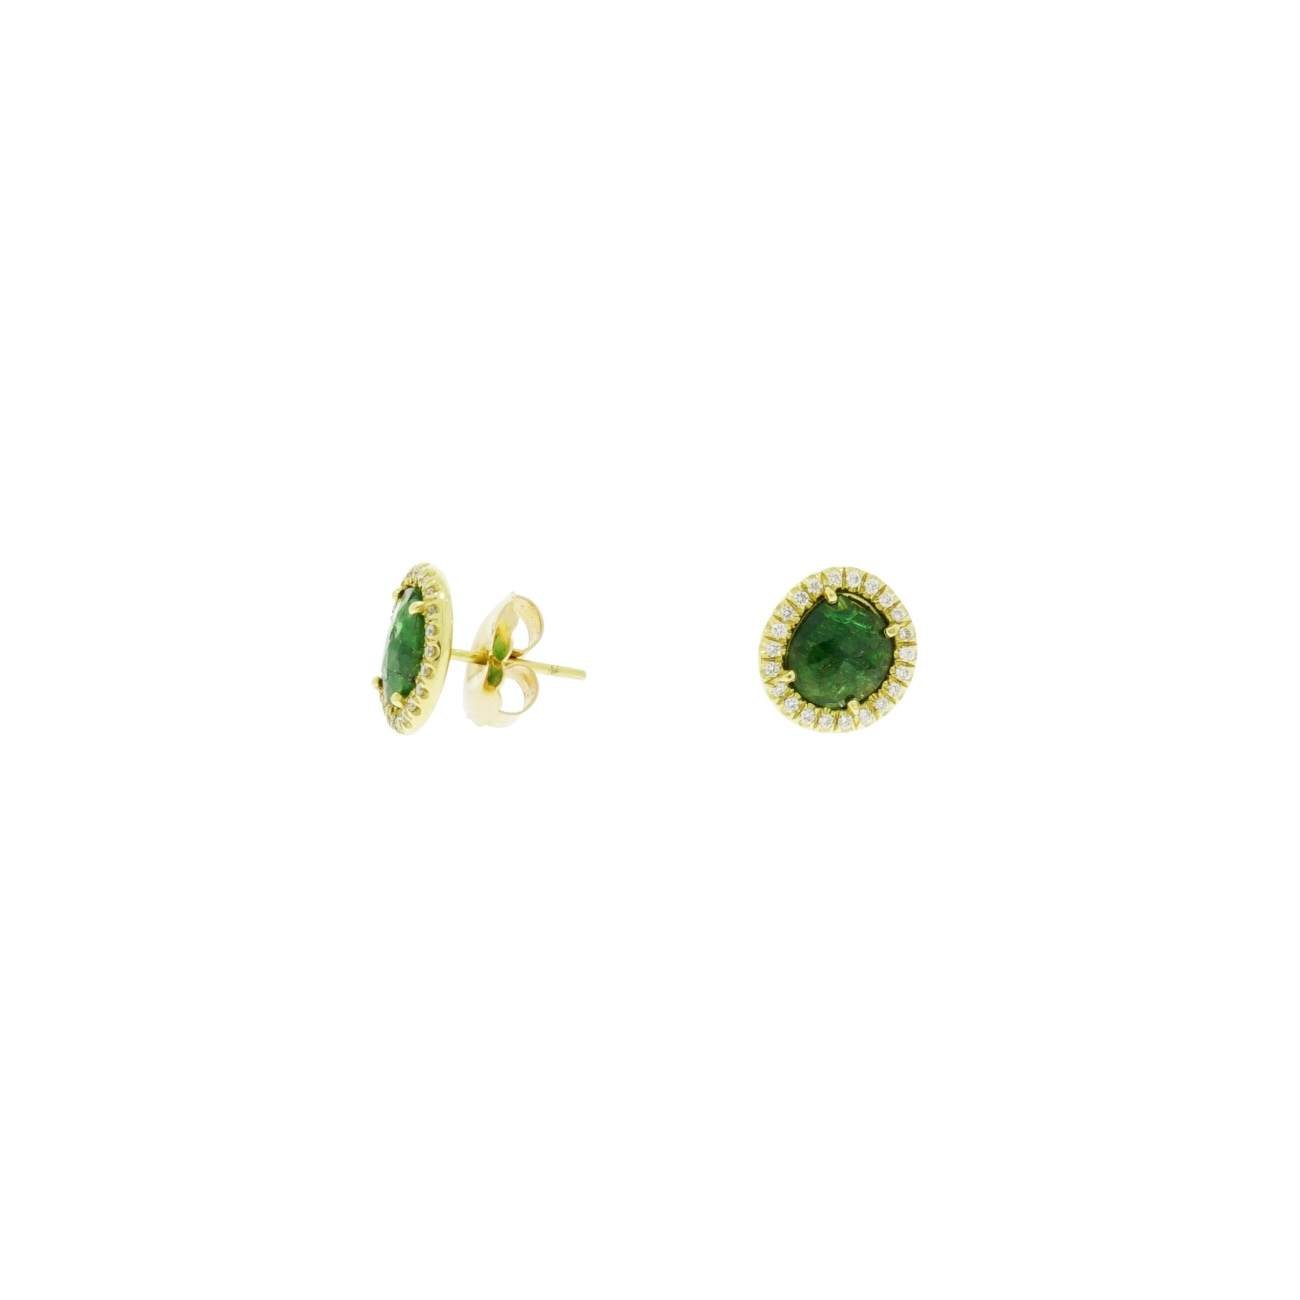 Lauren K Jewelry - Tsavorite & Diamond Yellow Gold Stud Earrings | Manfredi Jewels